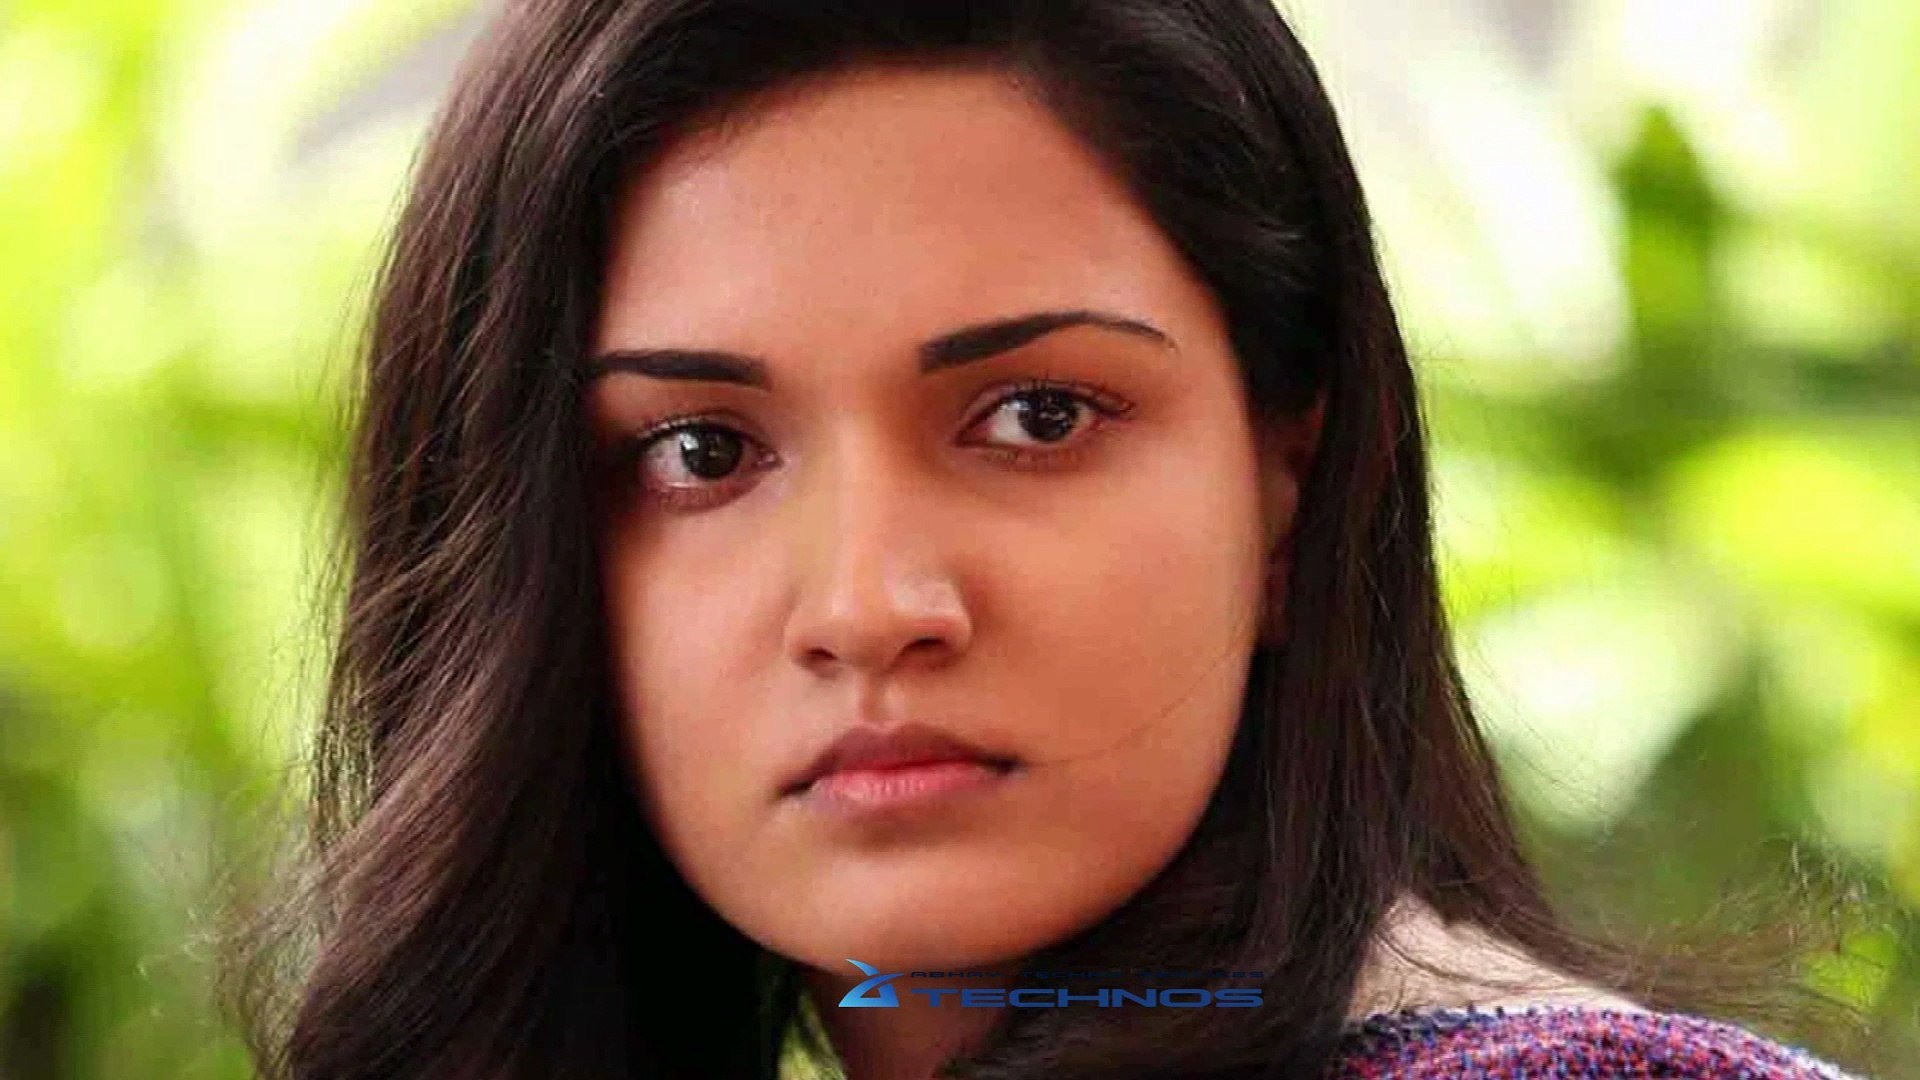 Honey rose says about cinema industry